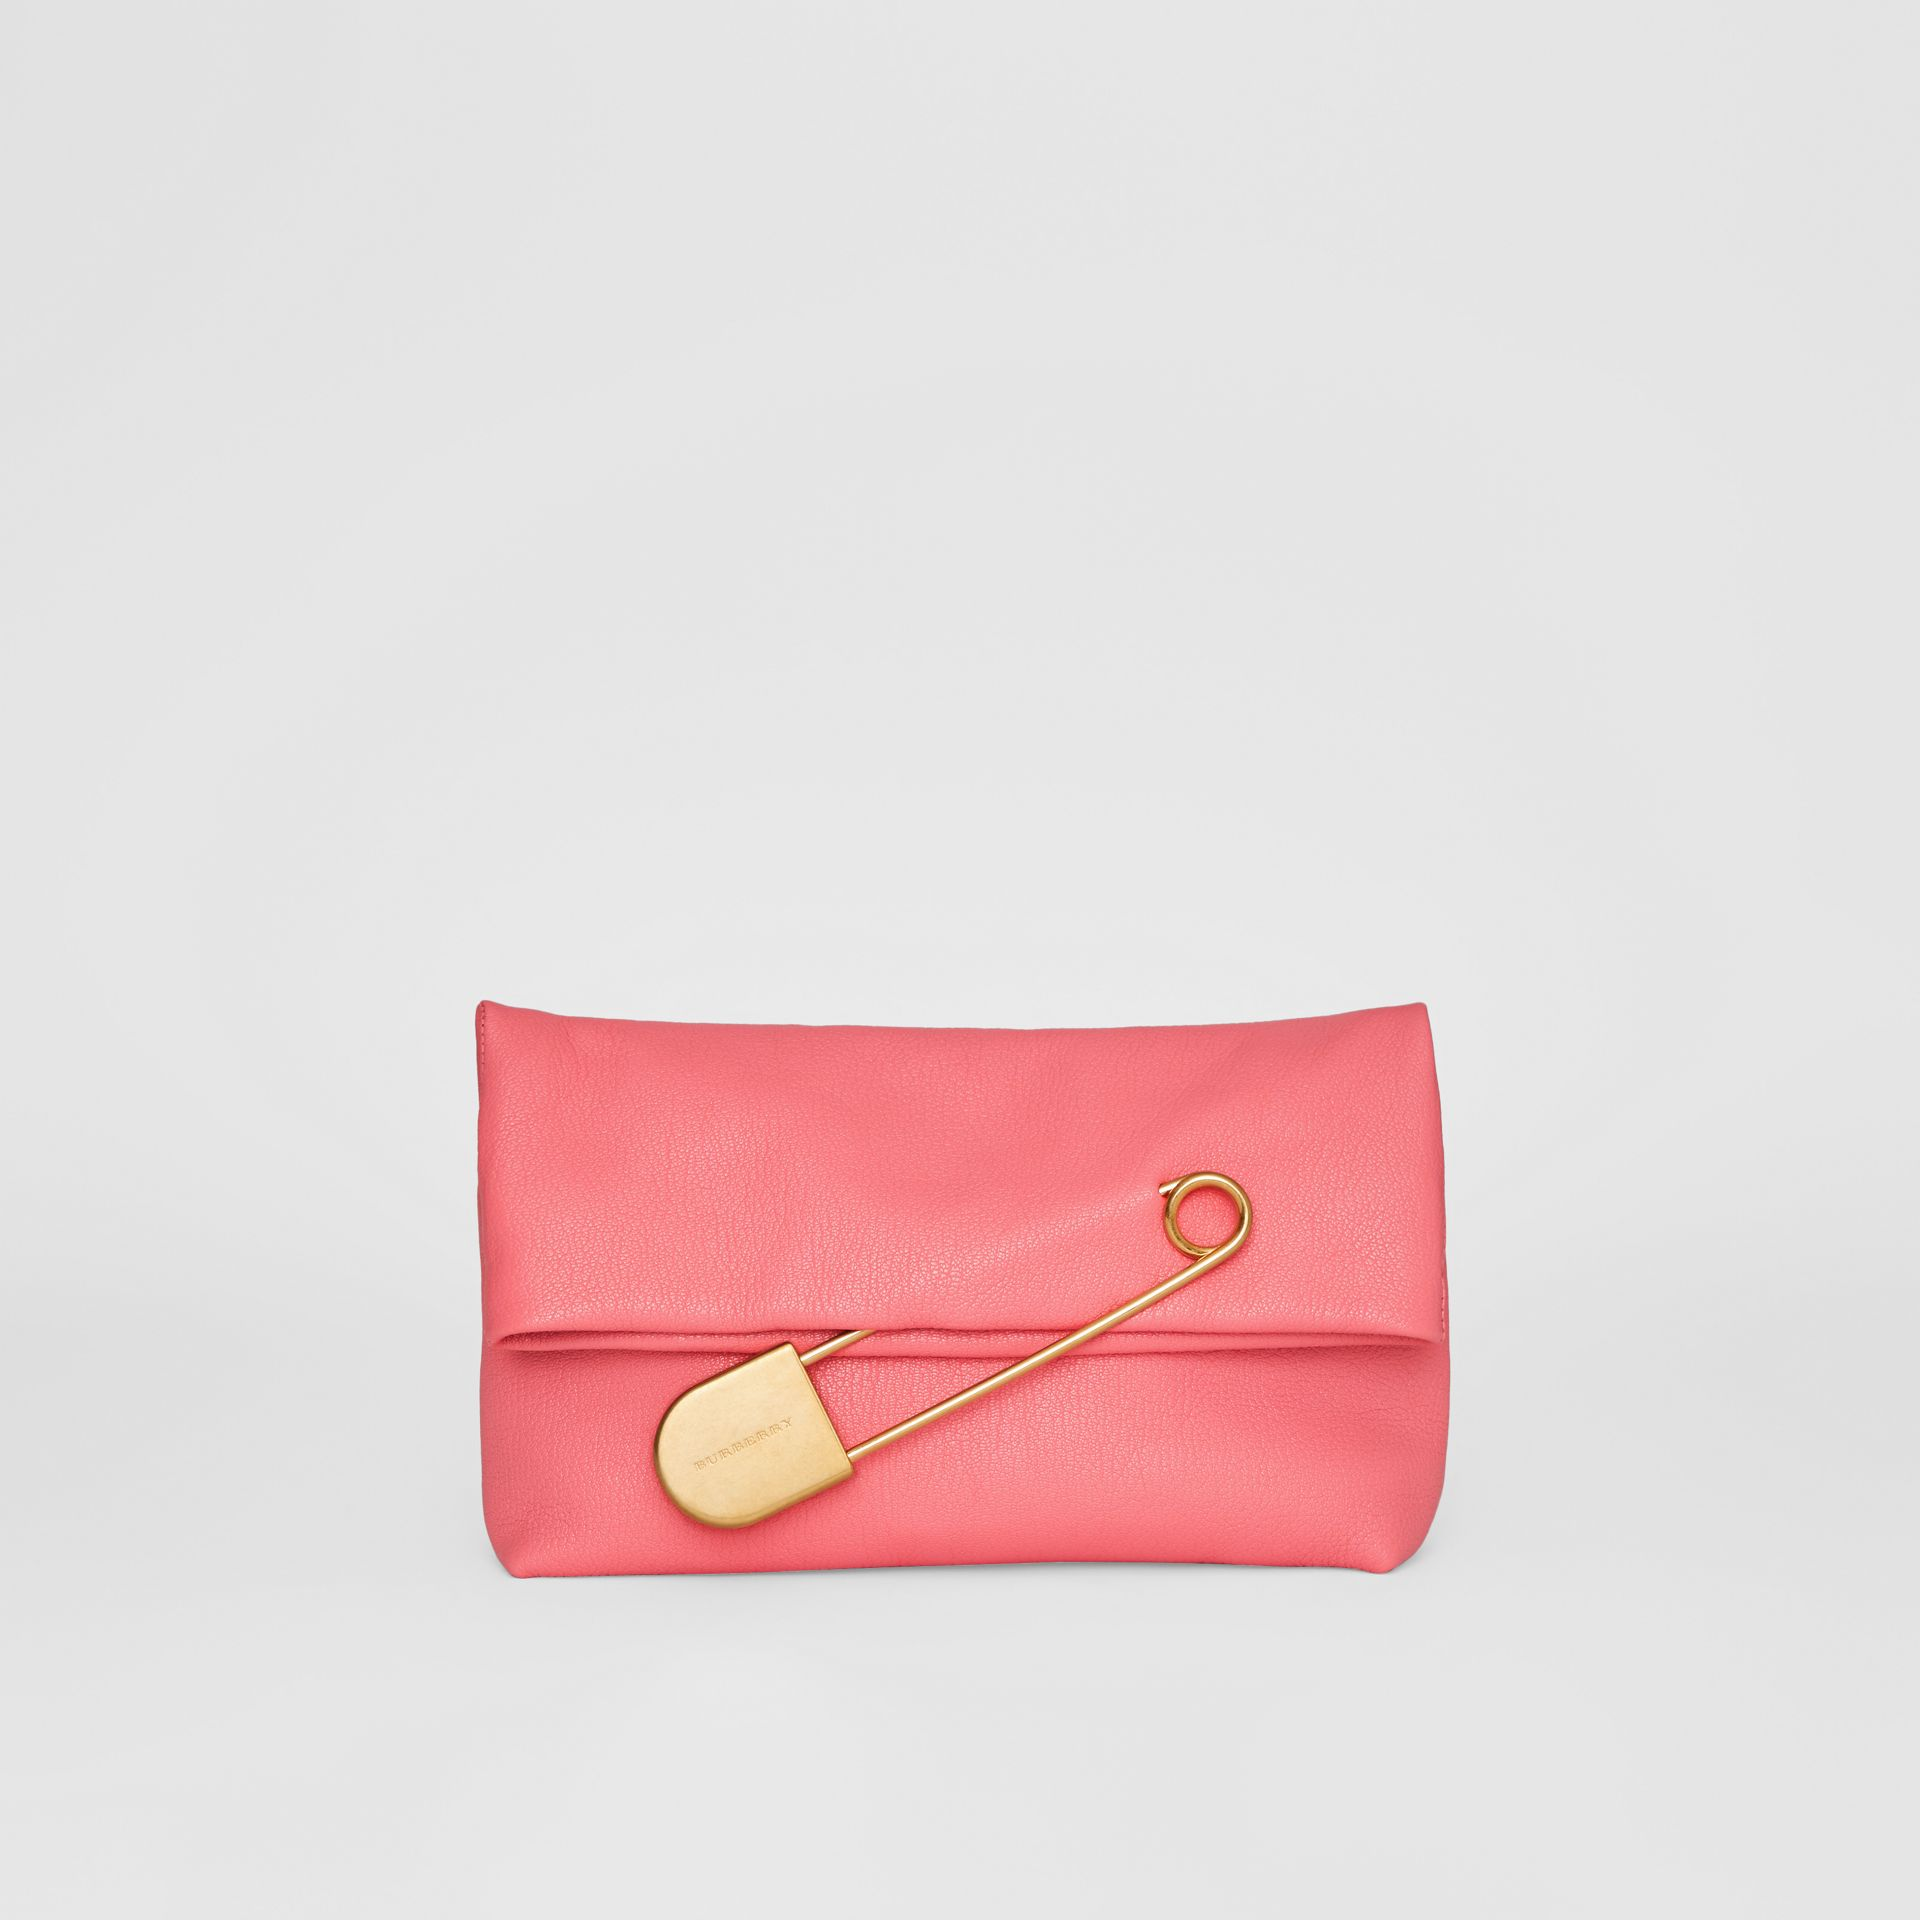 The Medium Pin Clutch in Leather in Bright Coral Pink - Women | Burberry United States - gallery image 4